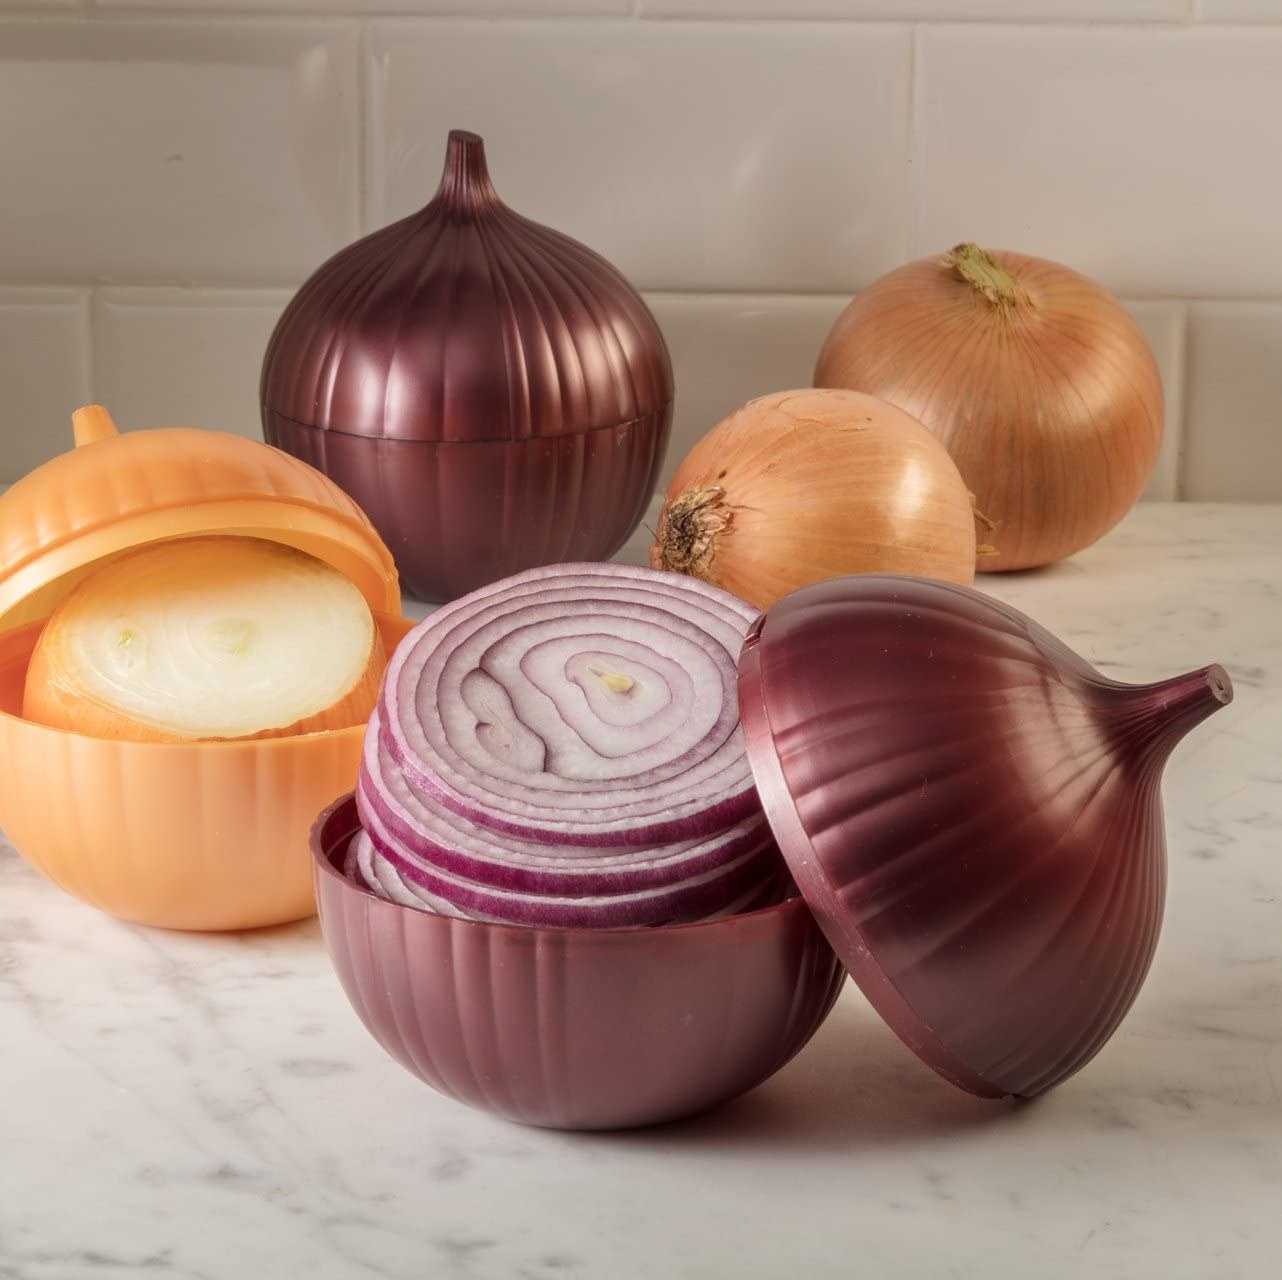 The onion saver tipped open on a counter to show the red onion inside